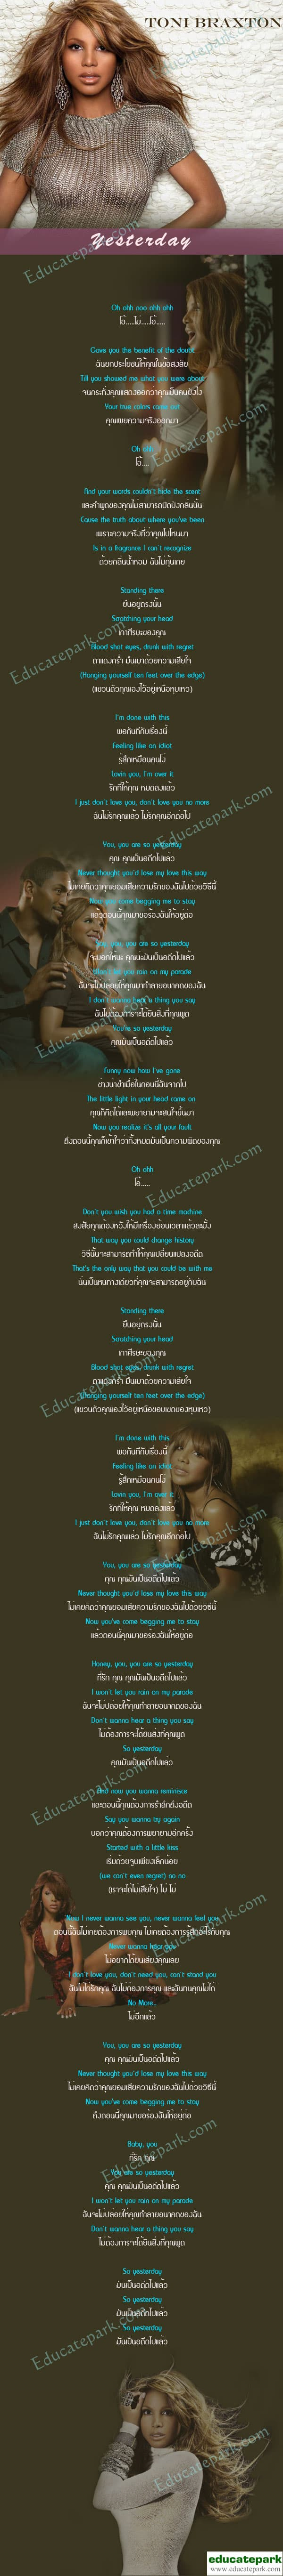 แปลเพลง Yesterday - Toni Braxton